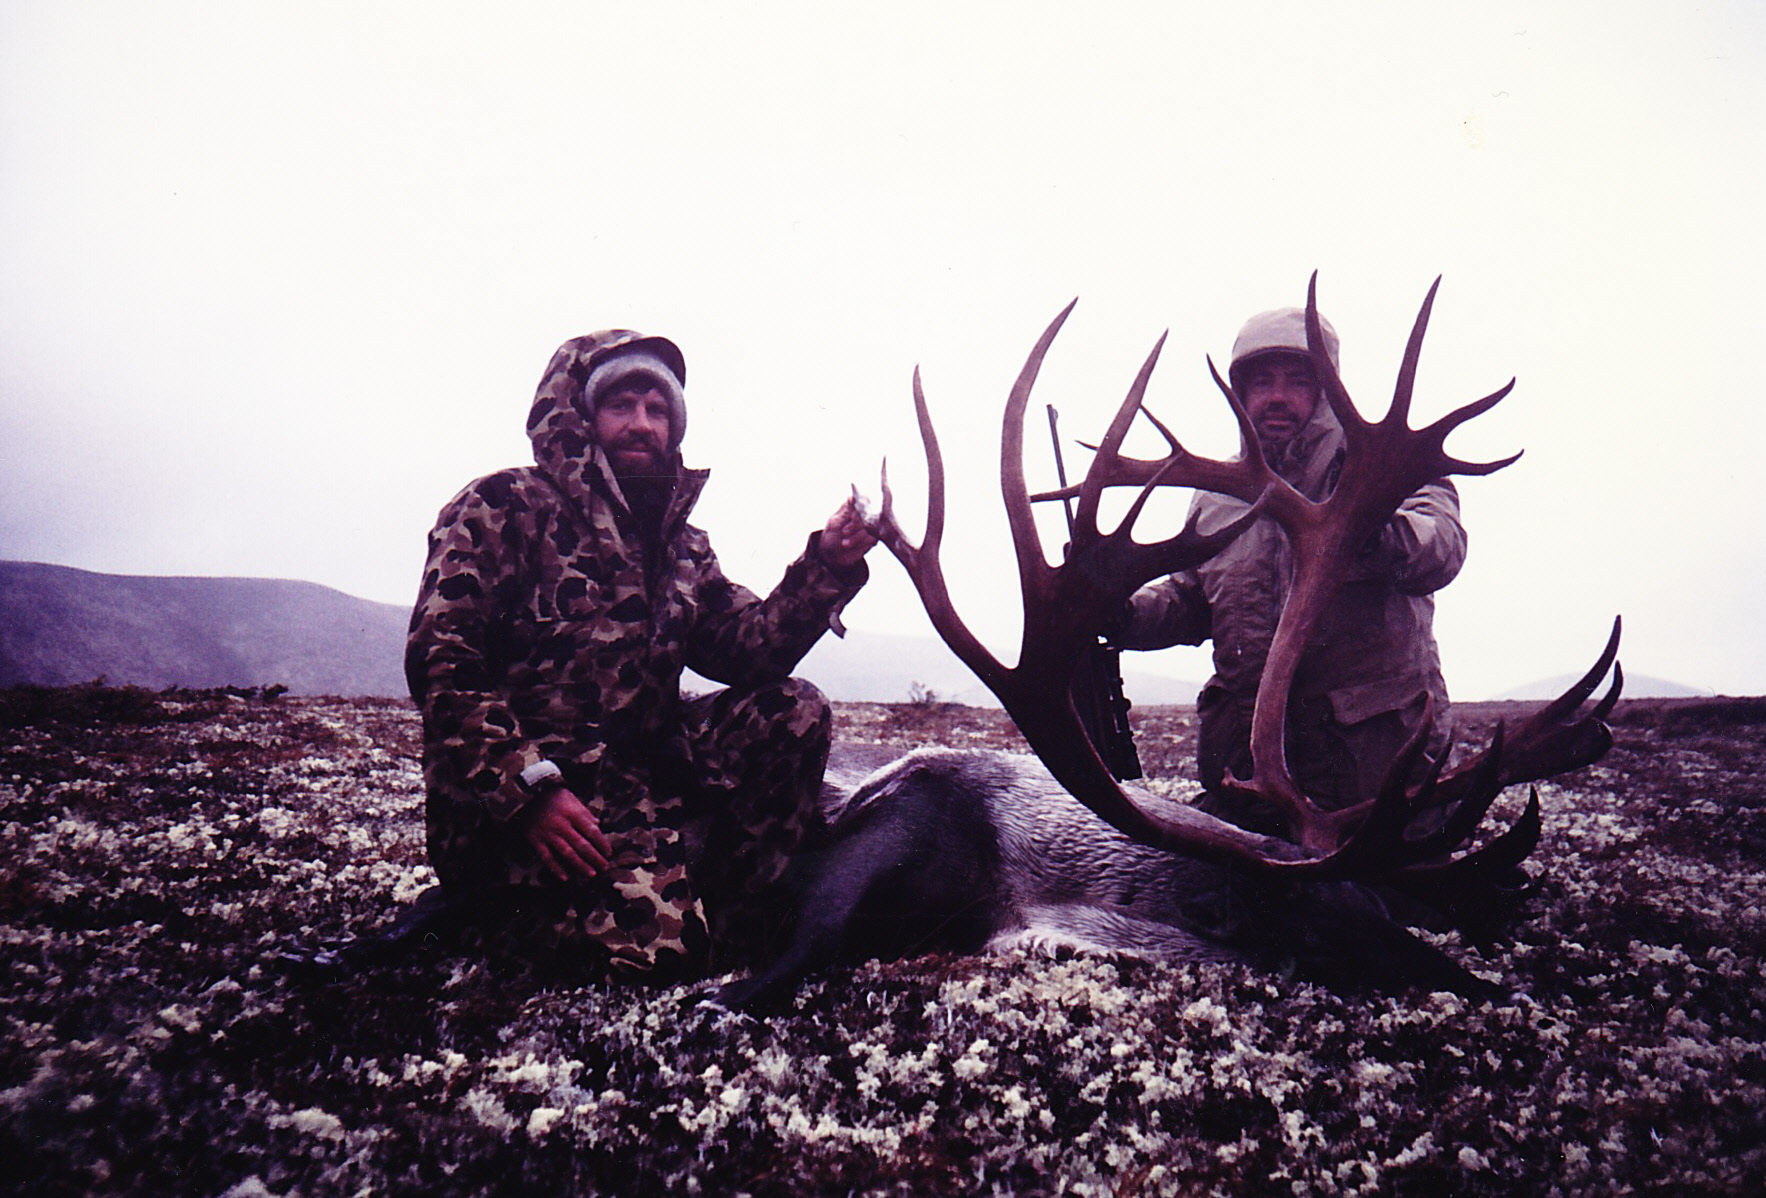 Leonard Anderson of WV and me with his 402 B&C caribou in September 1987. His caribou also scored 444 SCI points making the Safari Club's record book.